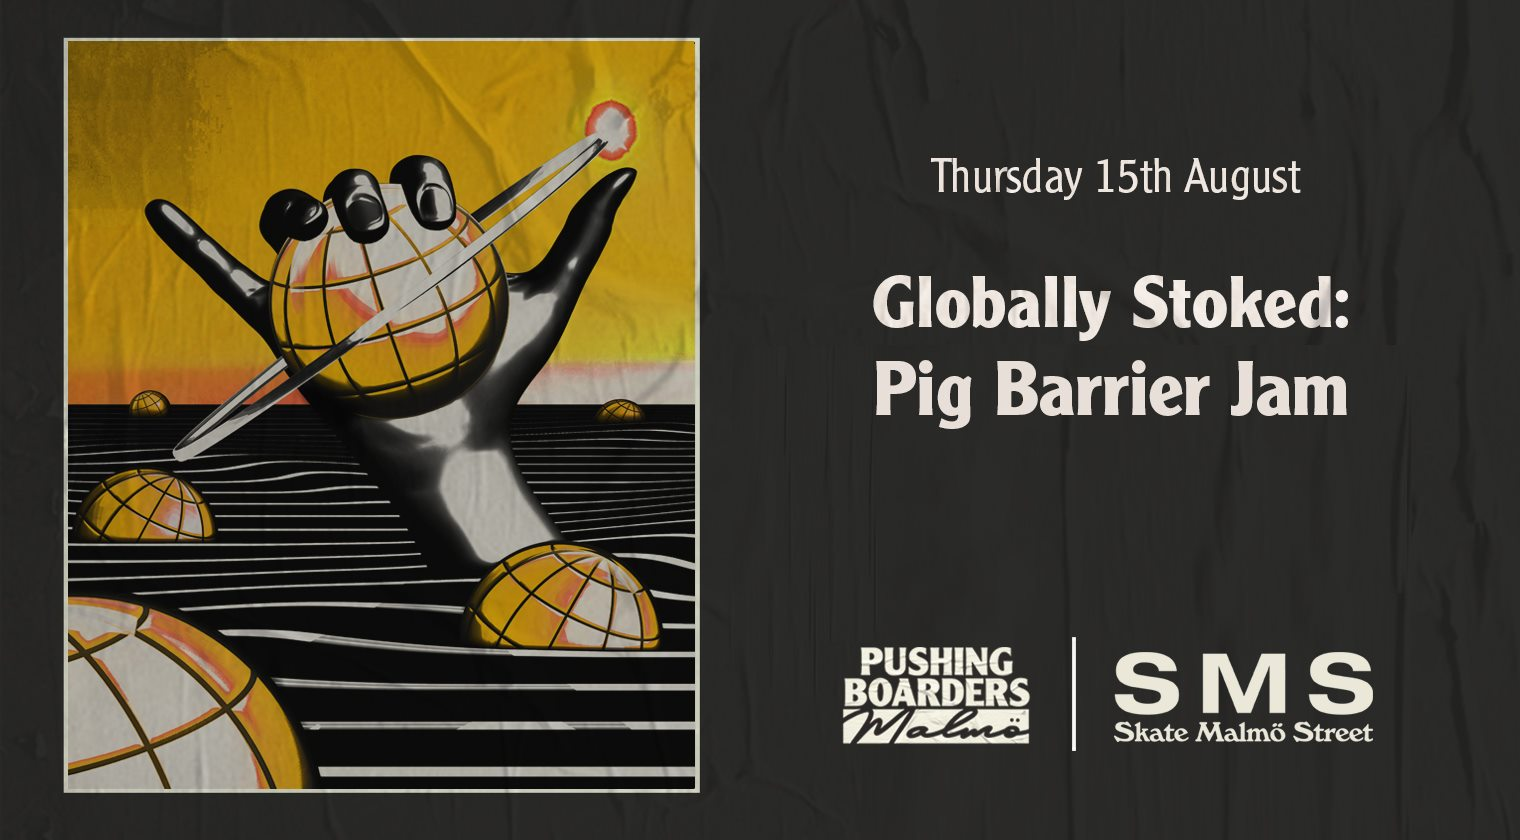 Globally Stoked - Pig Barrier Jam